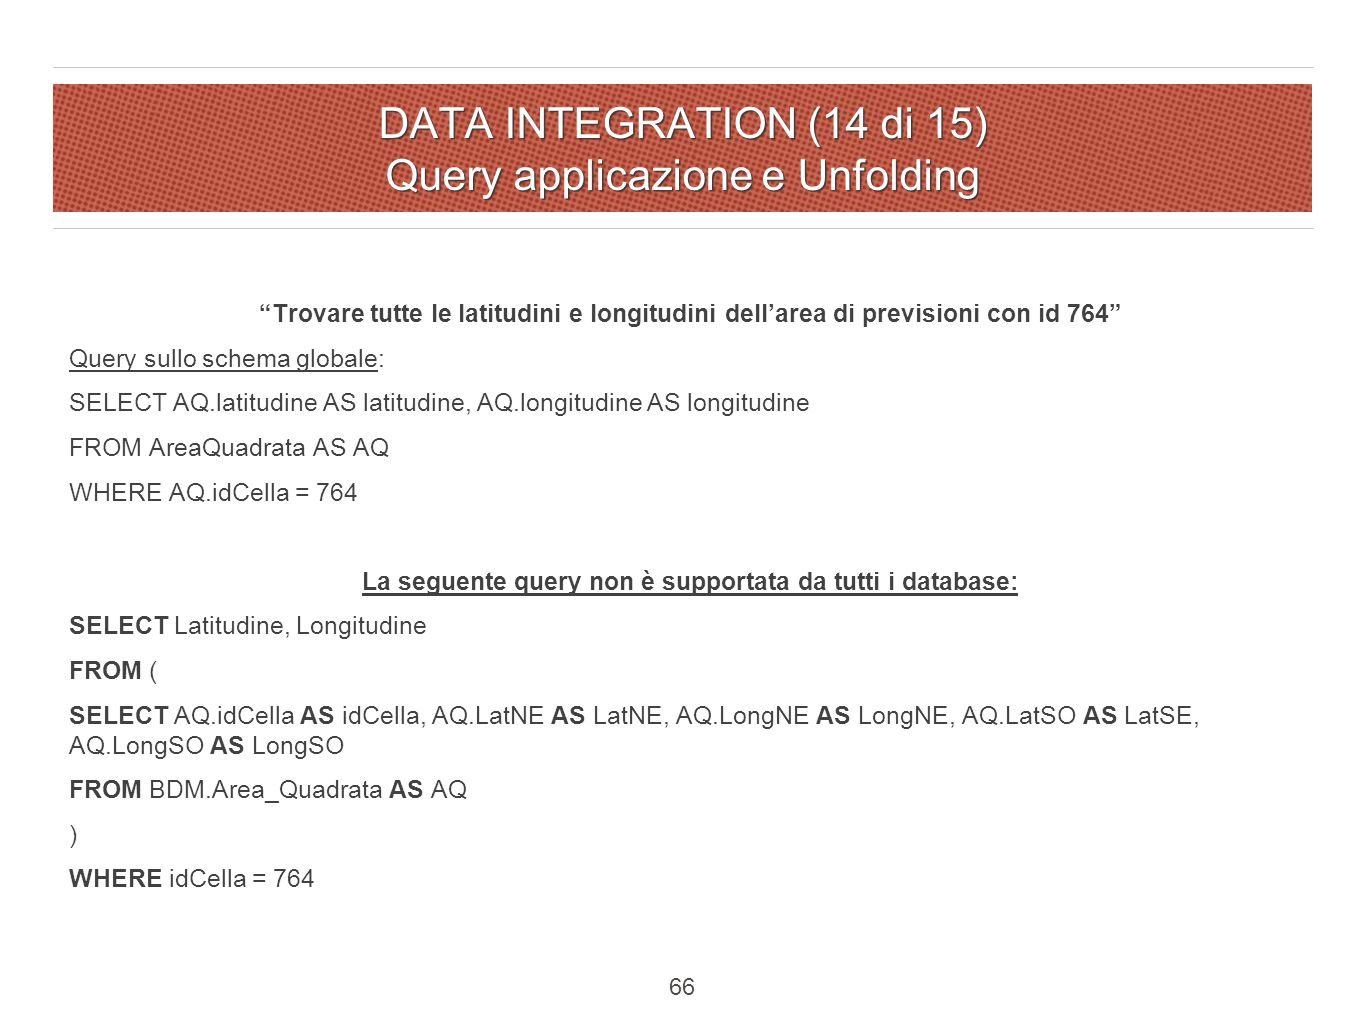 DATA INTEGRATION (14 di 15) Query applicazione e Unfolding Trovare tutte le latitudini e longitudini dell'area di previsioni con id 764 Query sullo schema globale: SELECT AQ.latitudine AS latitudine, AQ.longitudine AS longitudine FROM AreaQuadrata AS AQ WHERE AQ.idCella = 764 La seguente query non è supportata da tutti i database: SELECT Latitudine, Longitudine FROM ( SELECT AQ.idCella AS idCella, AQ.LatNE AS LatNE, AQ.LongNE AS LongNE, AQ.LatSO AS LatSE, AQ.LongSO AS LongSO FROM BDM.Area_Quadrata AS AQ ) WHERE idCella = 764 66